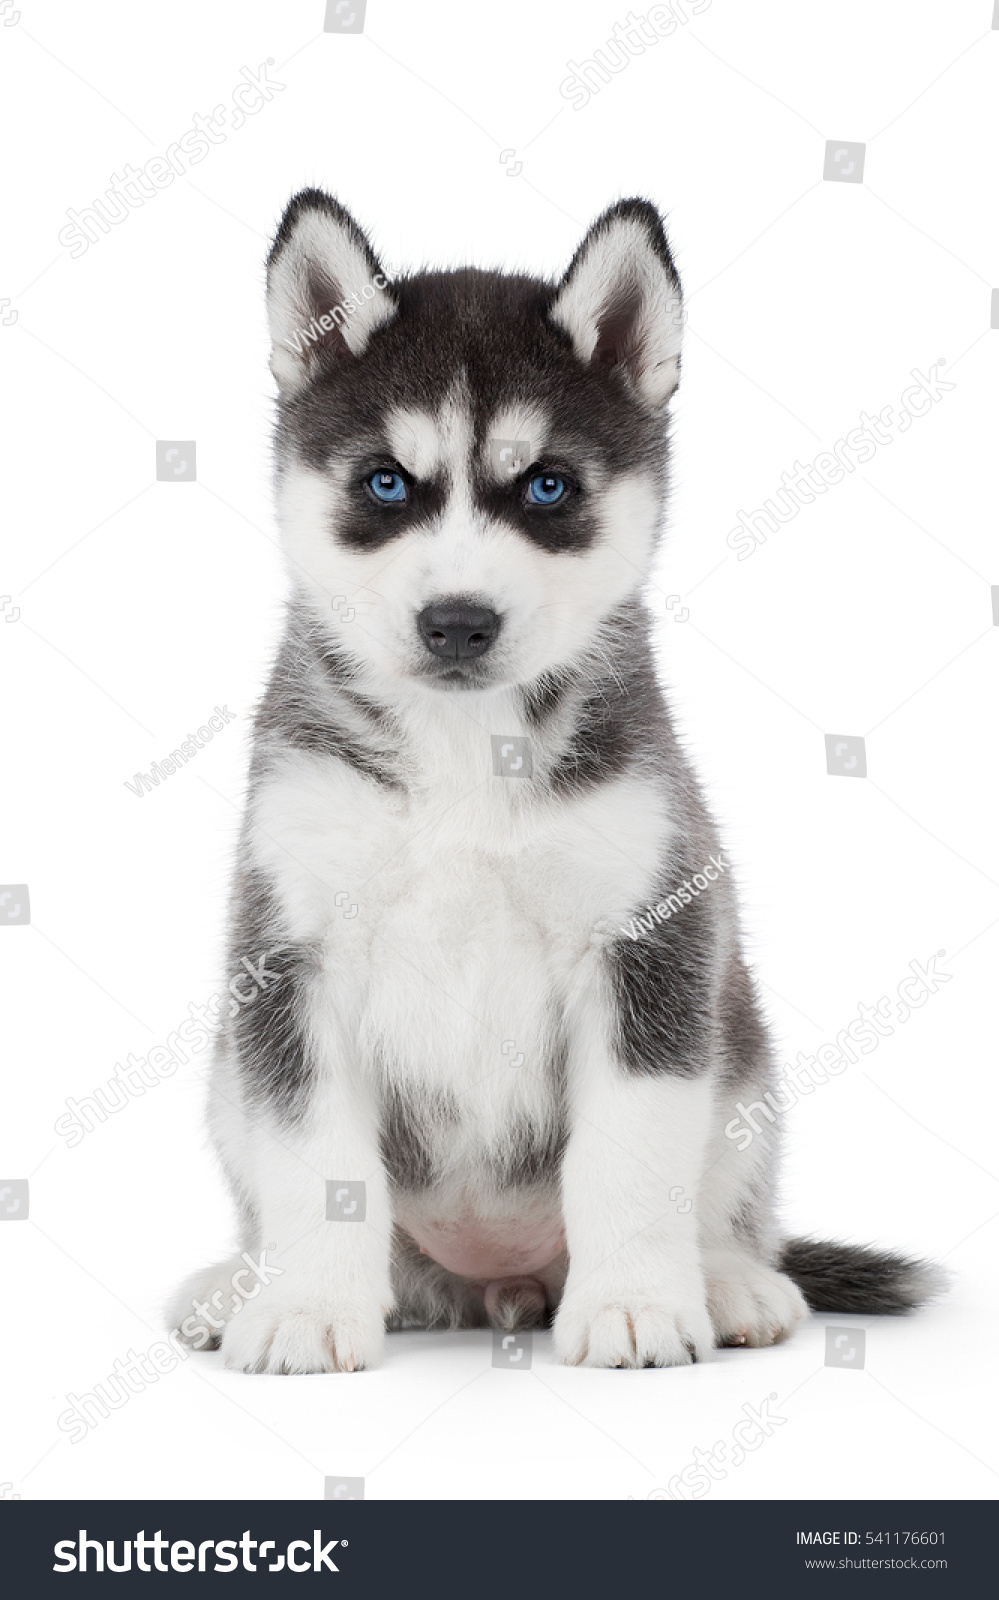 Cute puppy siberian husky black white cute puppy siberian husky black and white with blue eyes on white background in studio voltagebd Image collections